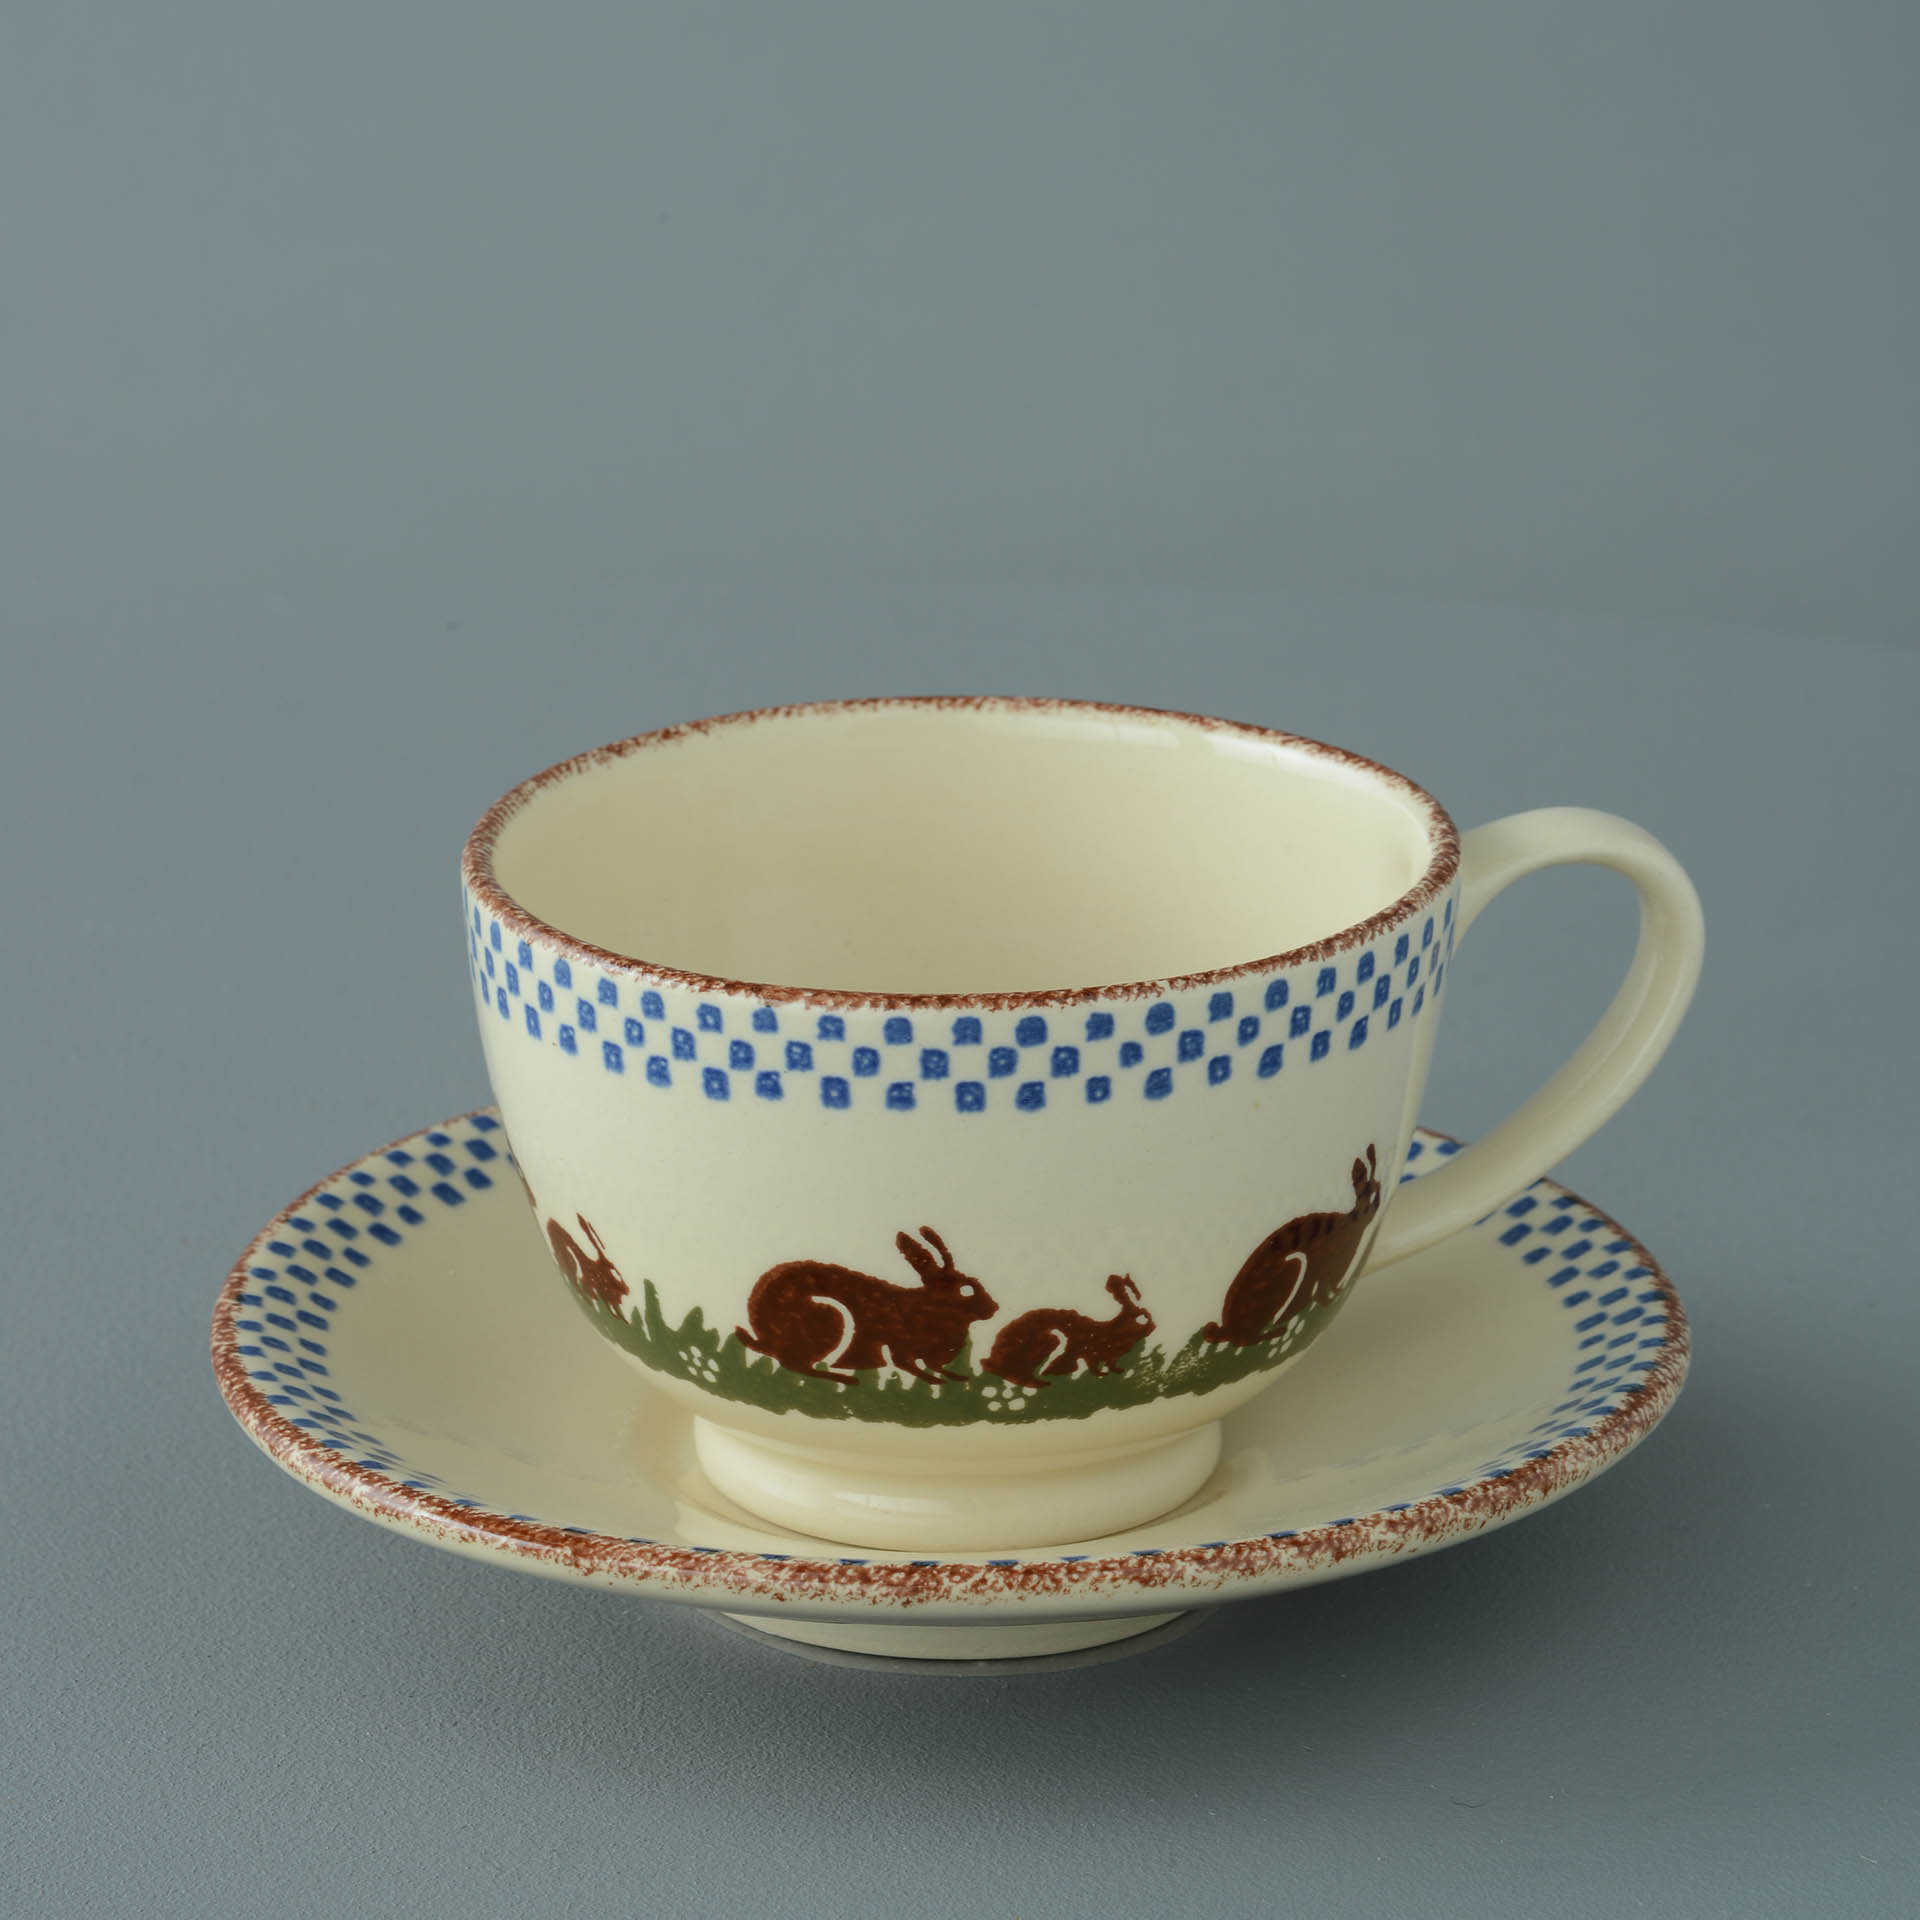 Rabbits Breakfast Cup and Saucer